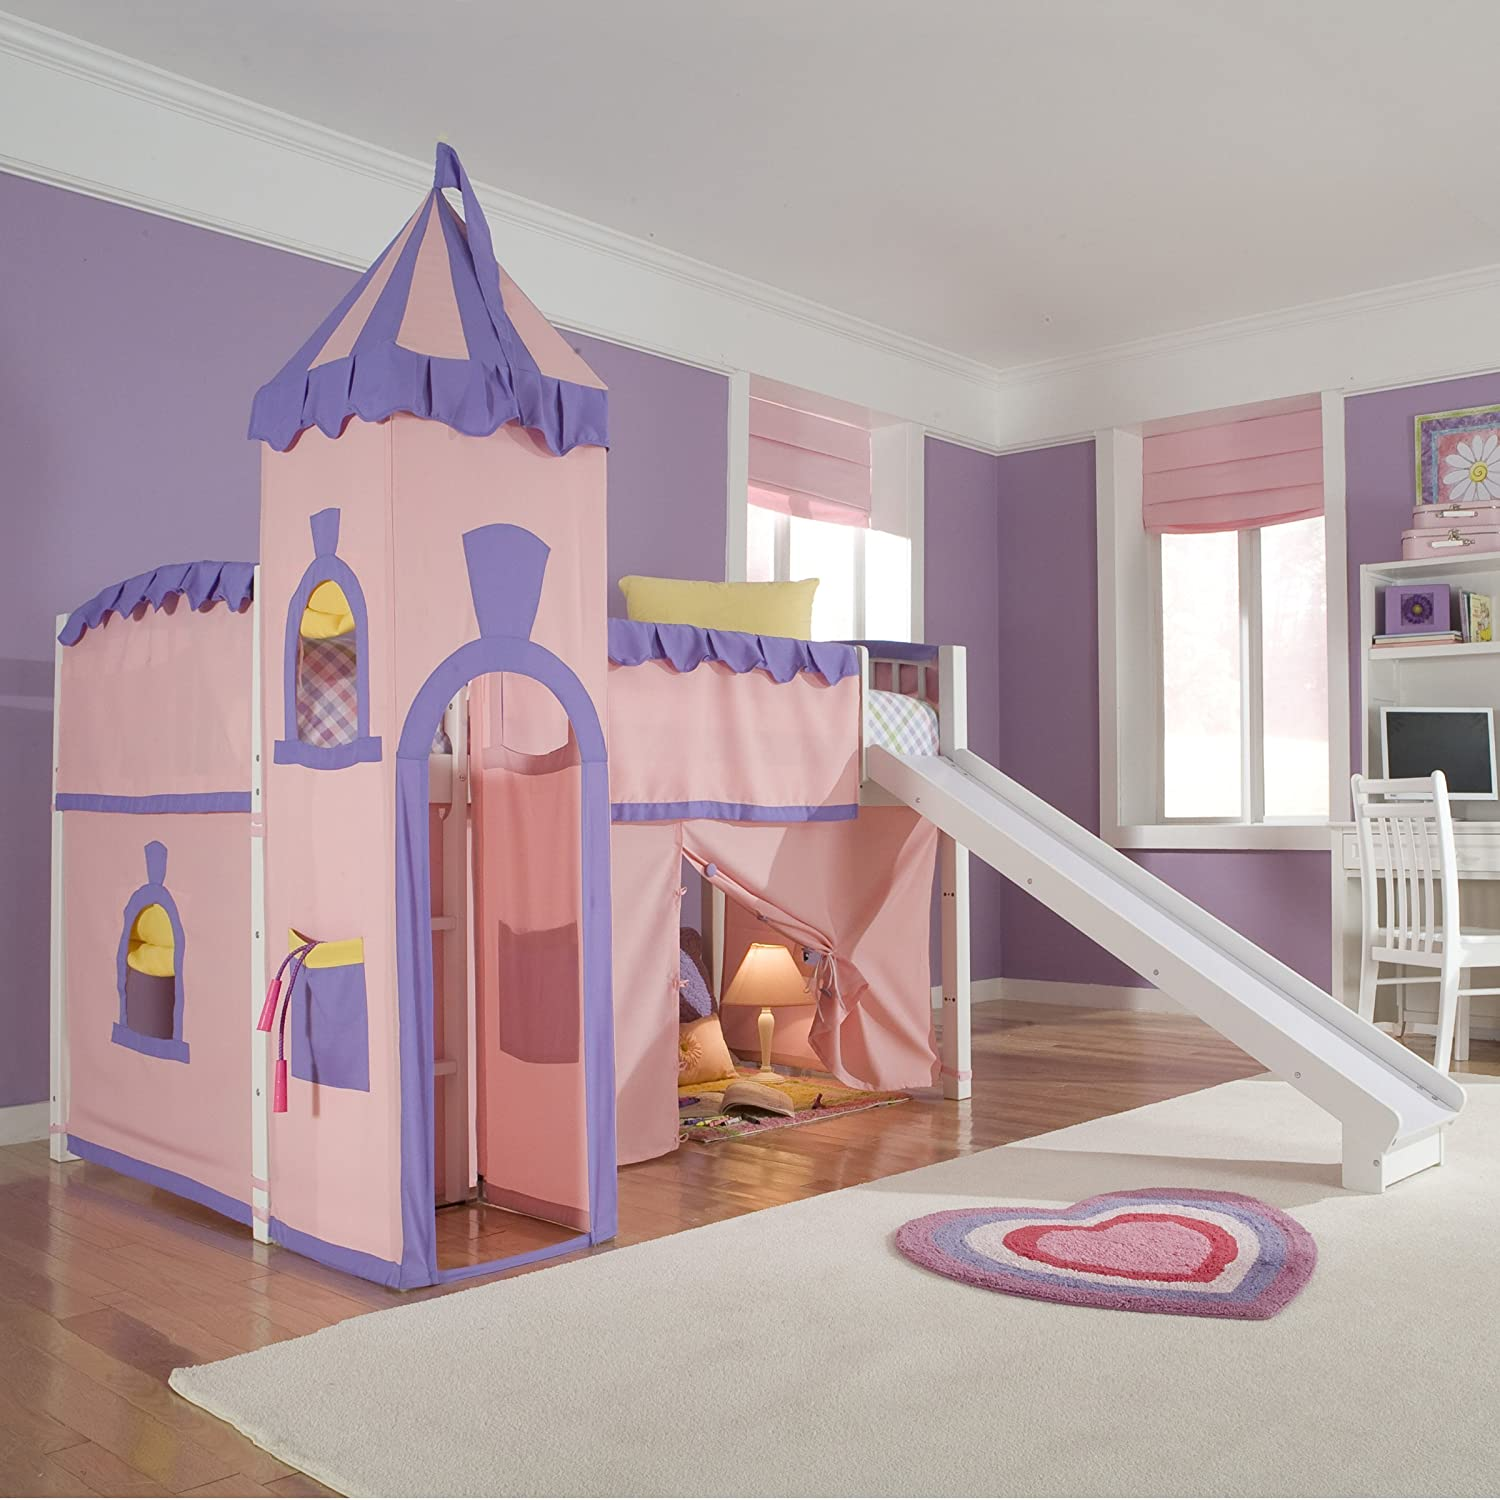 Schoolhouse Twin Princess Loft Bed w/ Slide, Perfect for Your Girls Bedroom Furniture Set: Amazon.in: Home & Kitchen